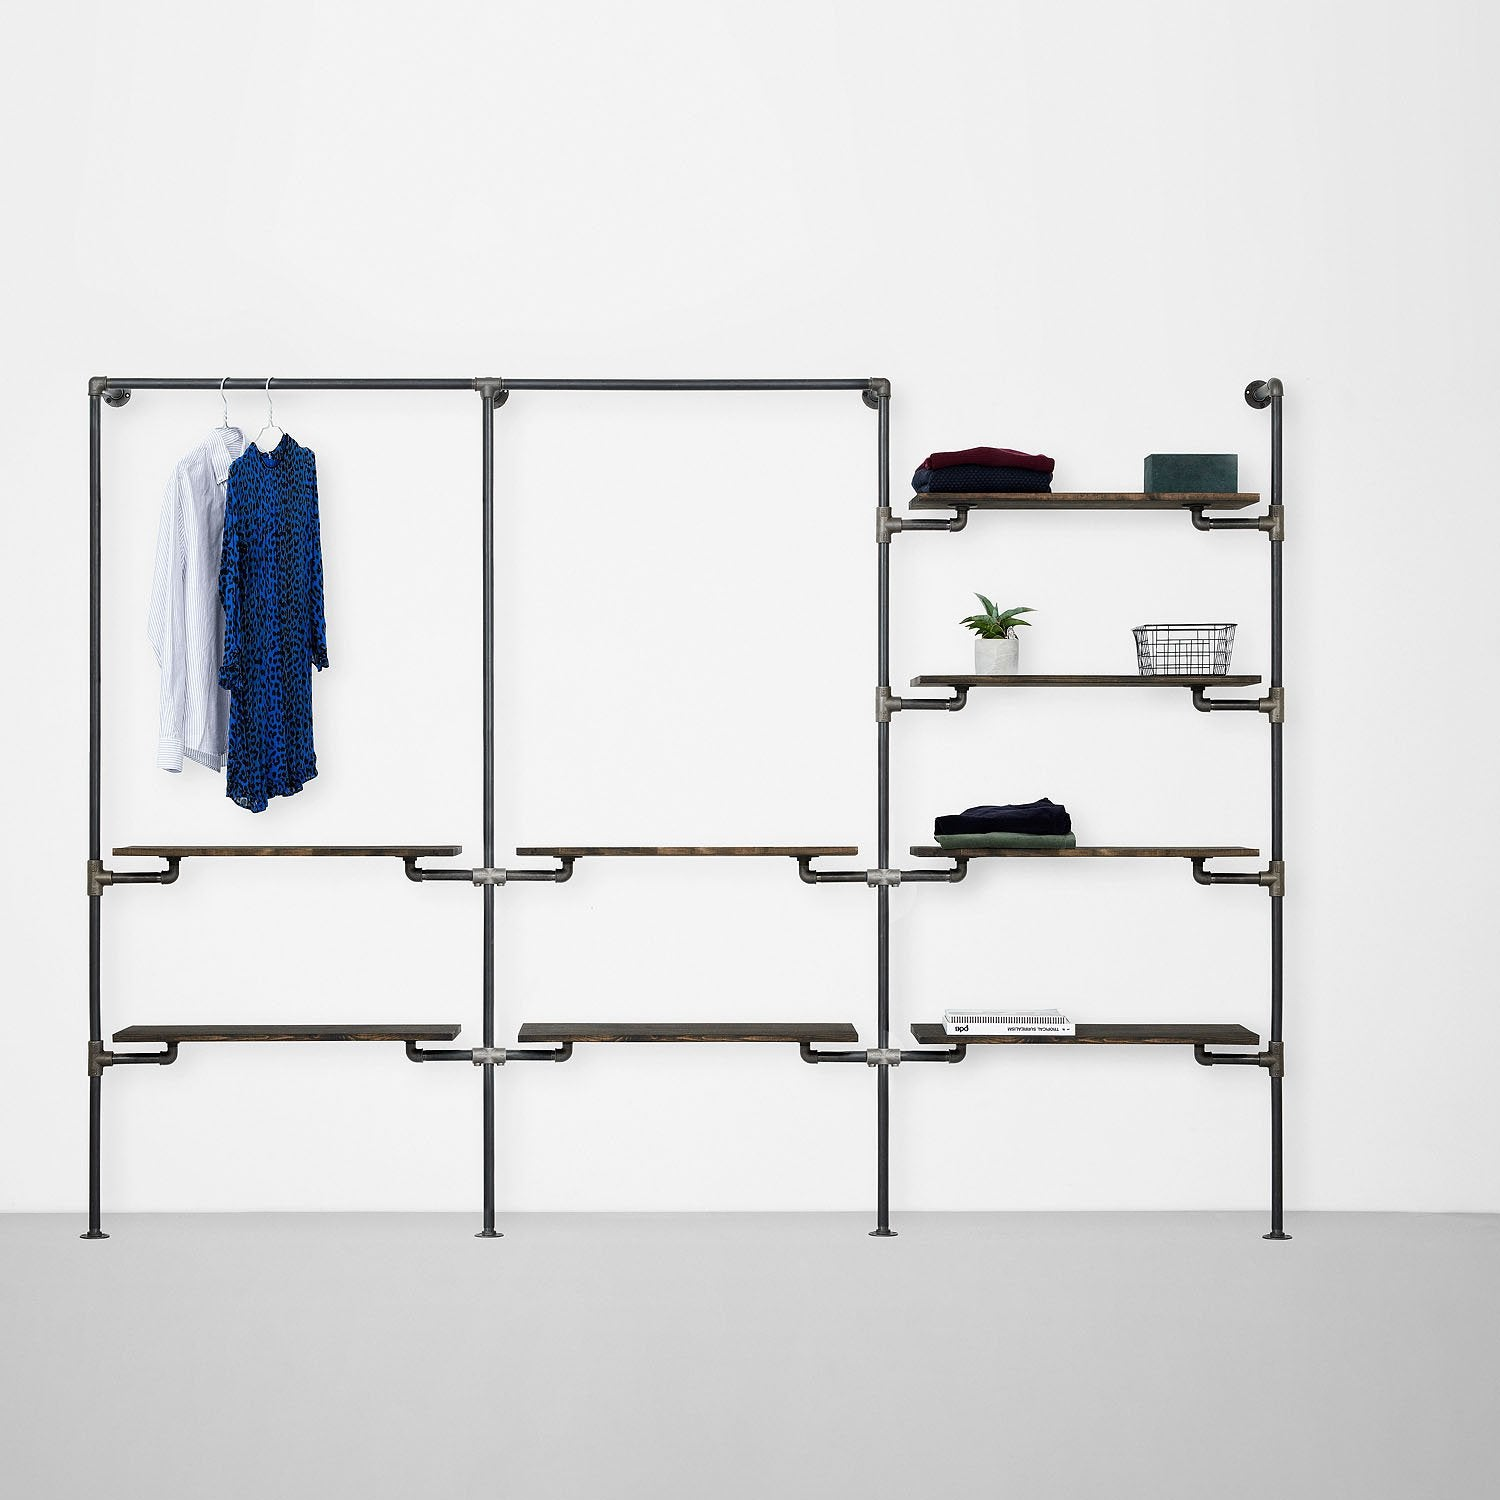 The Walk-In 3 row wardrobe system - 1 rail & 2 shelves / 1 rail & 2 shelves/ 4 shelves